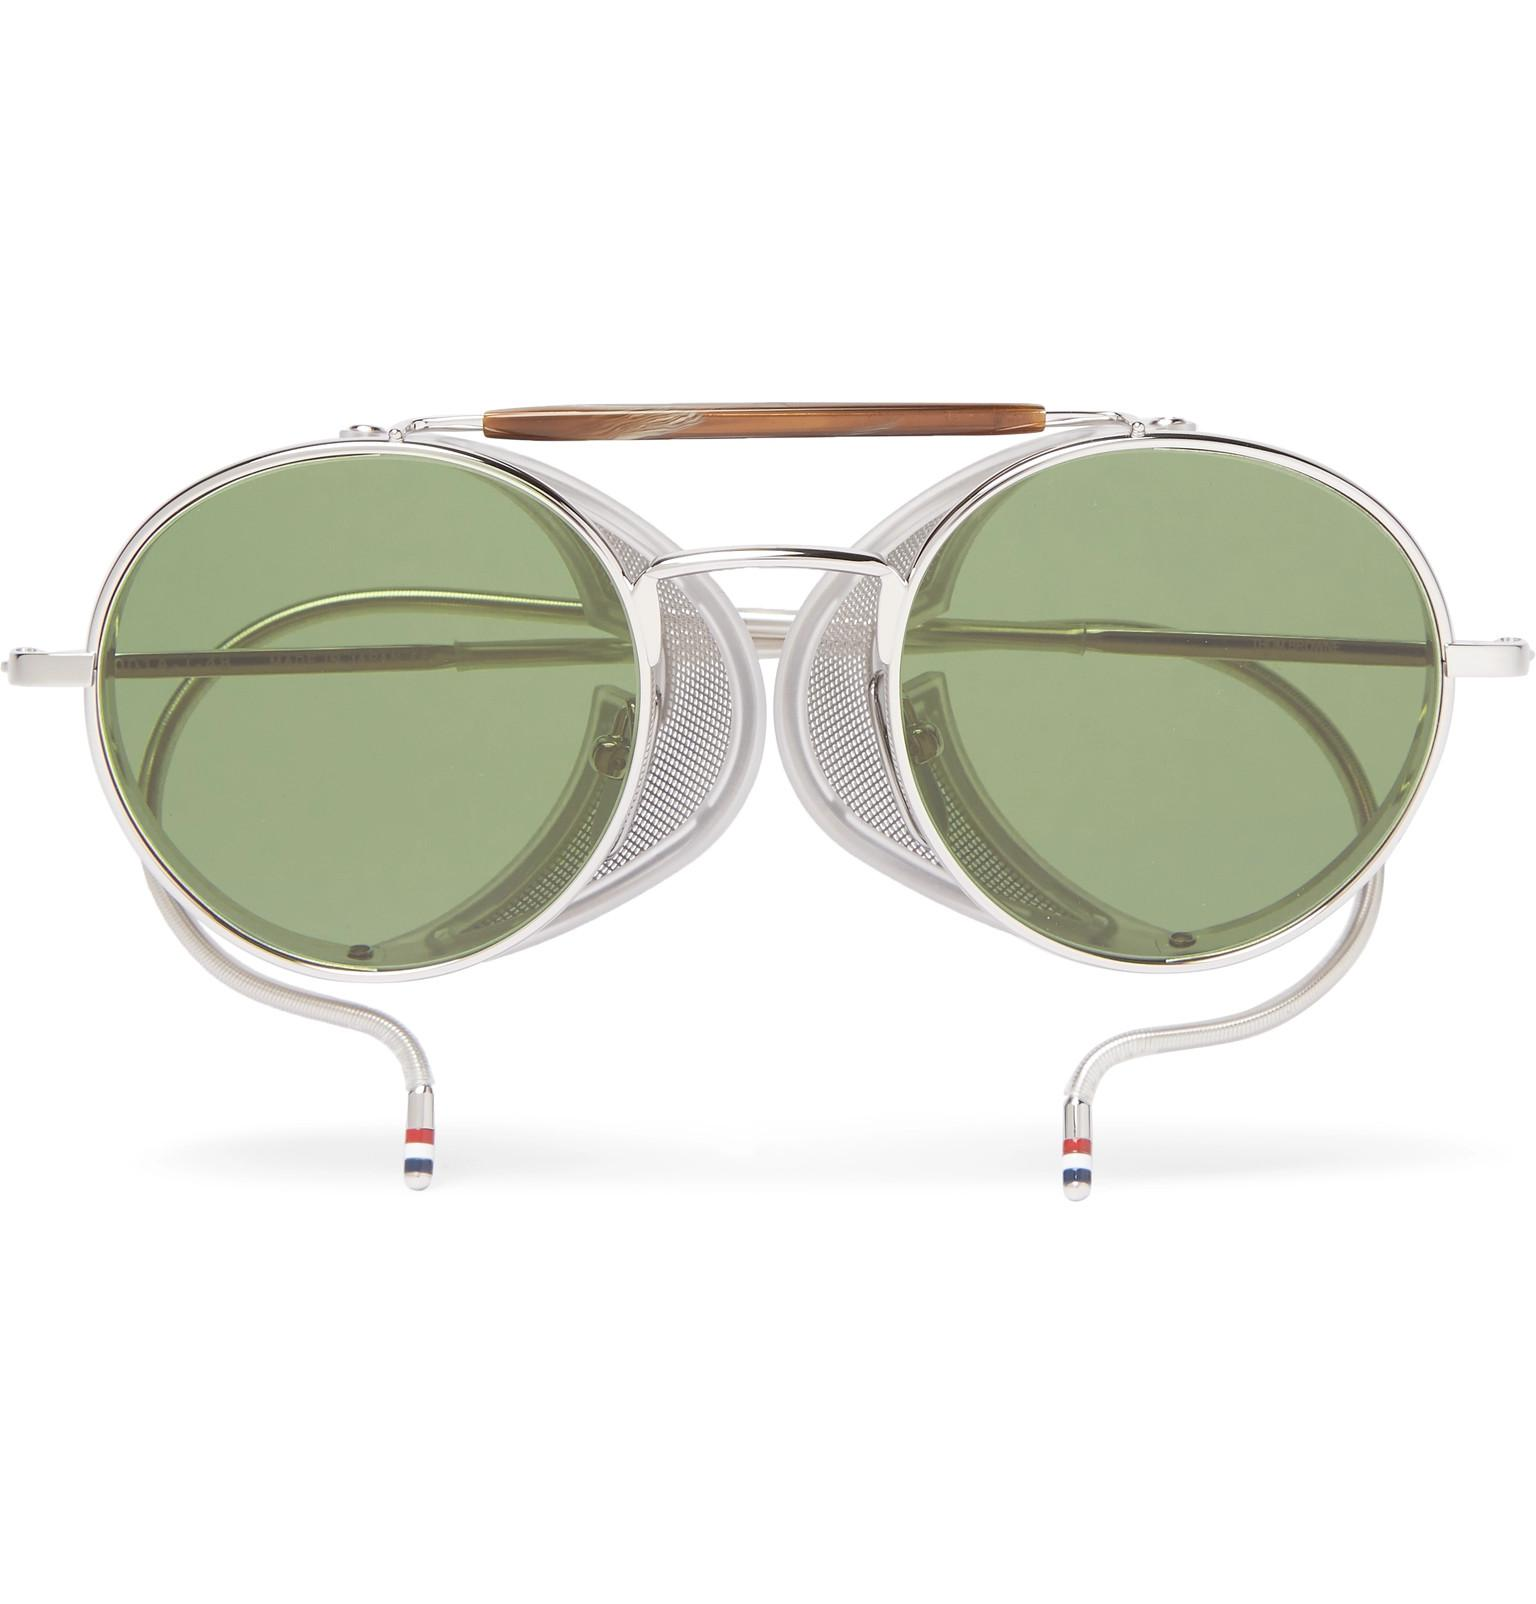 5162838402cfe Thom Browne Round-frame Metal Sunglasses in Metallic for Men - Lyst